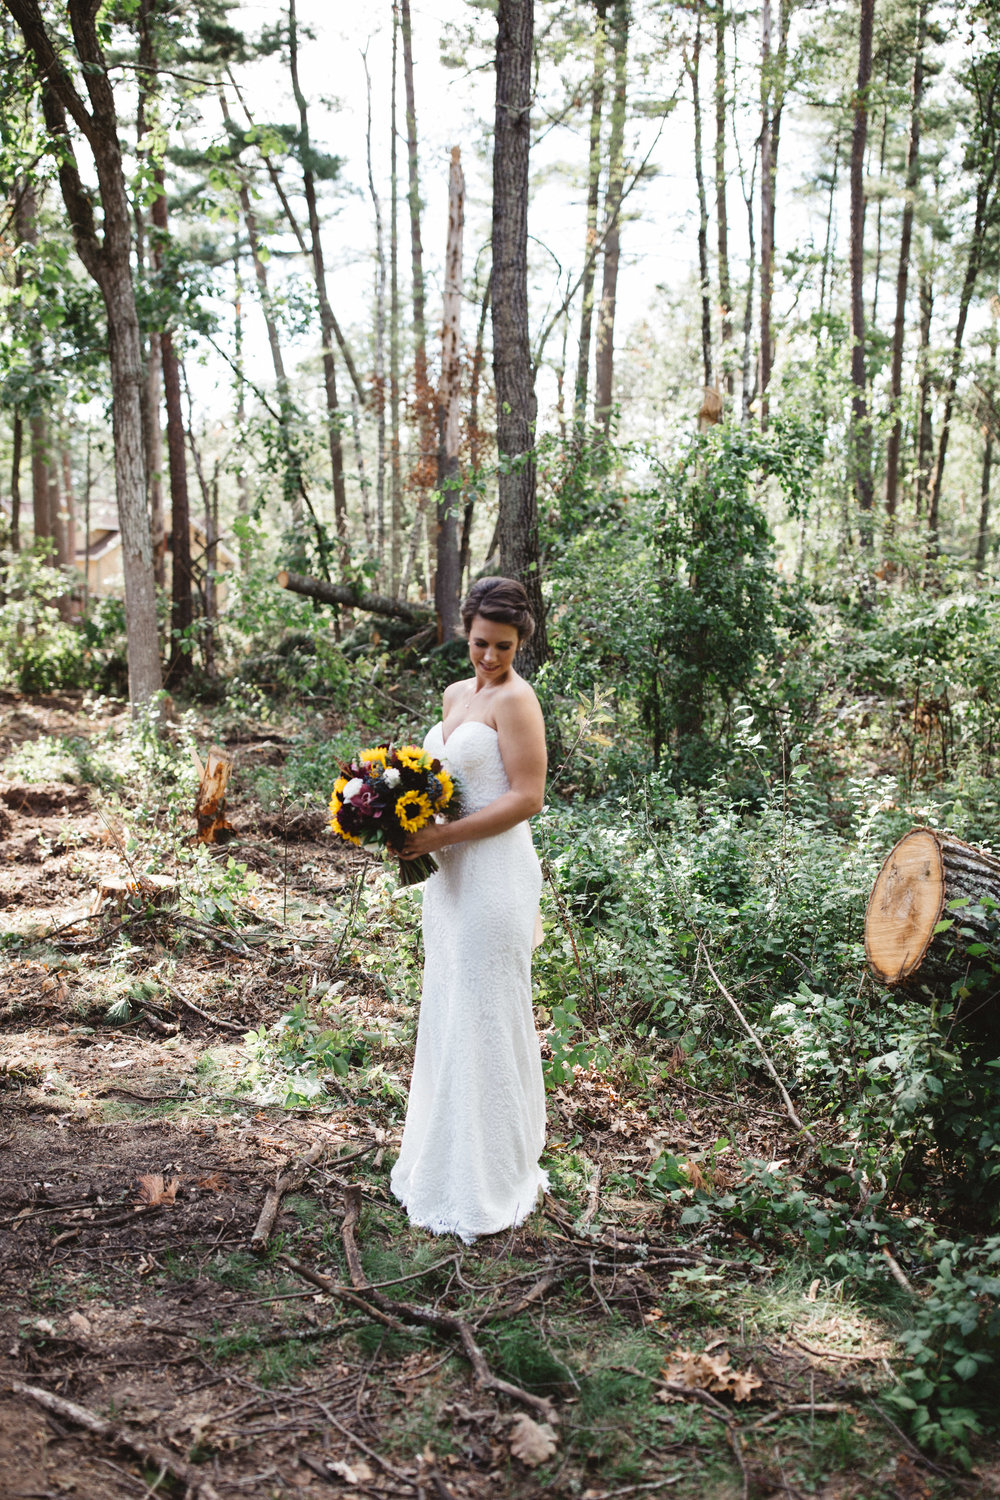 Romantic wedding in the forest. Photography by Britt DeZeeuw, Grand View Lodge photographer.